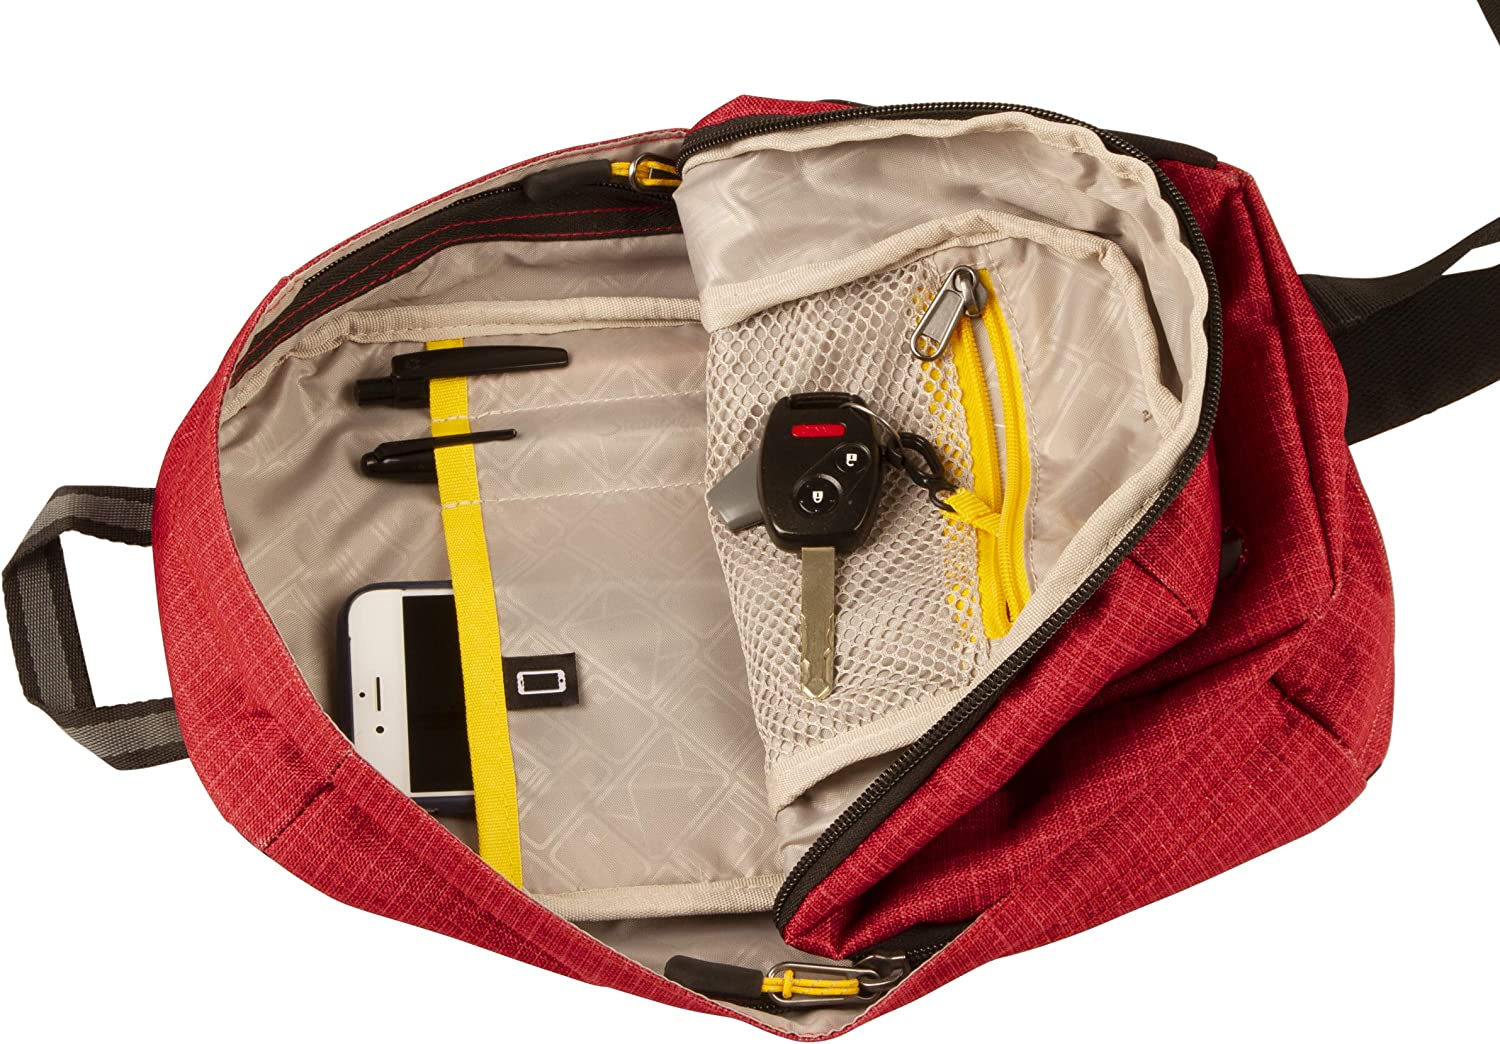 Eagle Creek National Geographic Adventure Sling Pack Backpack